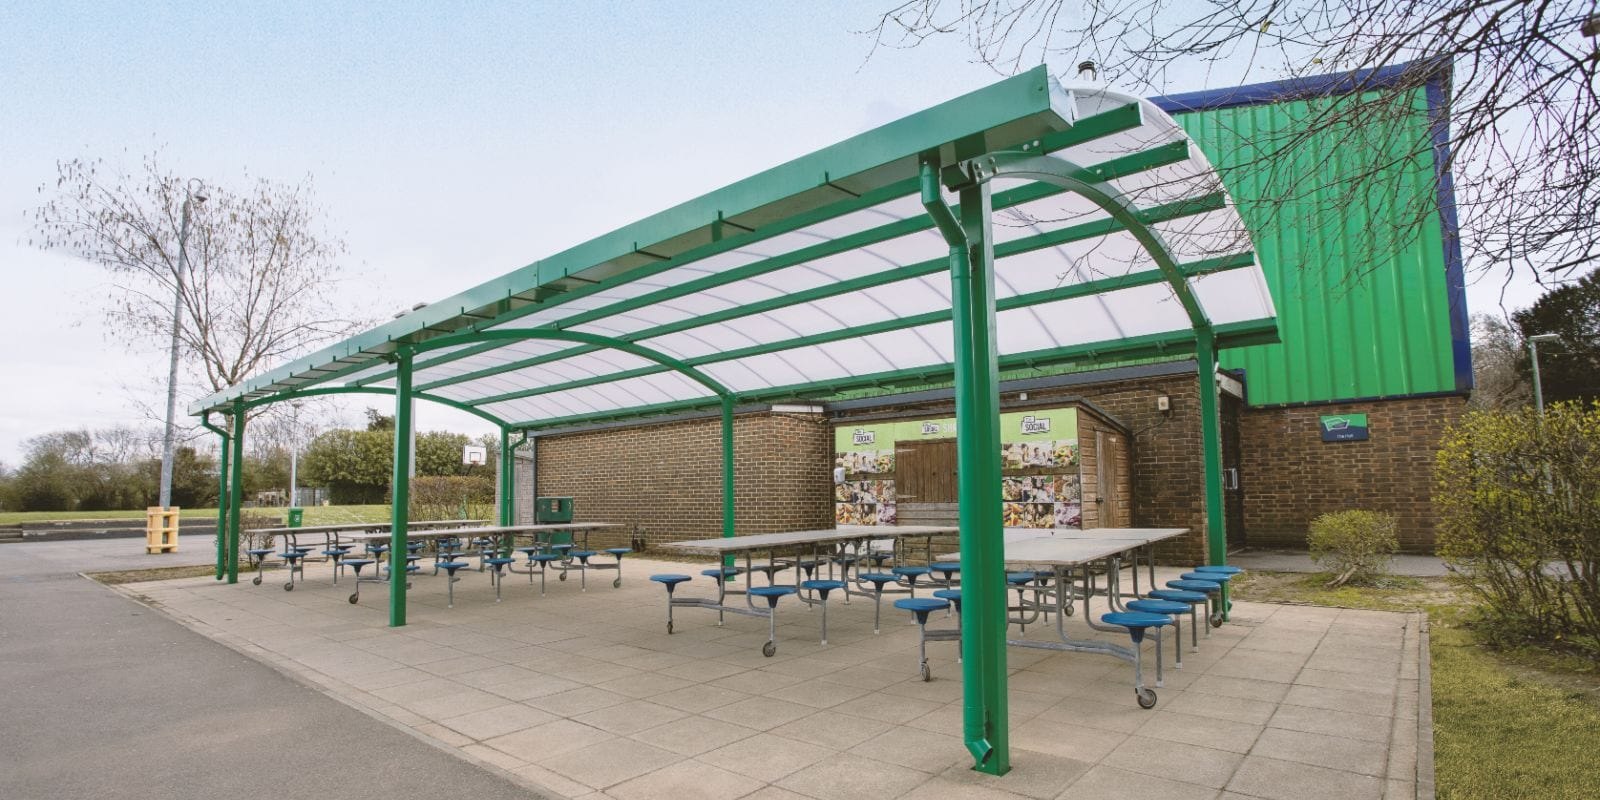 Green dining canopy we created for Oasis Academy Coulsdon